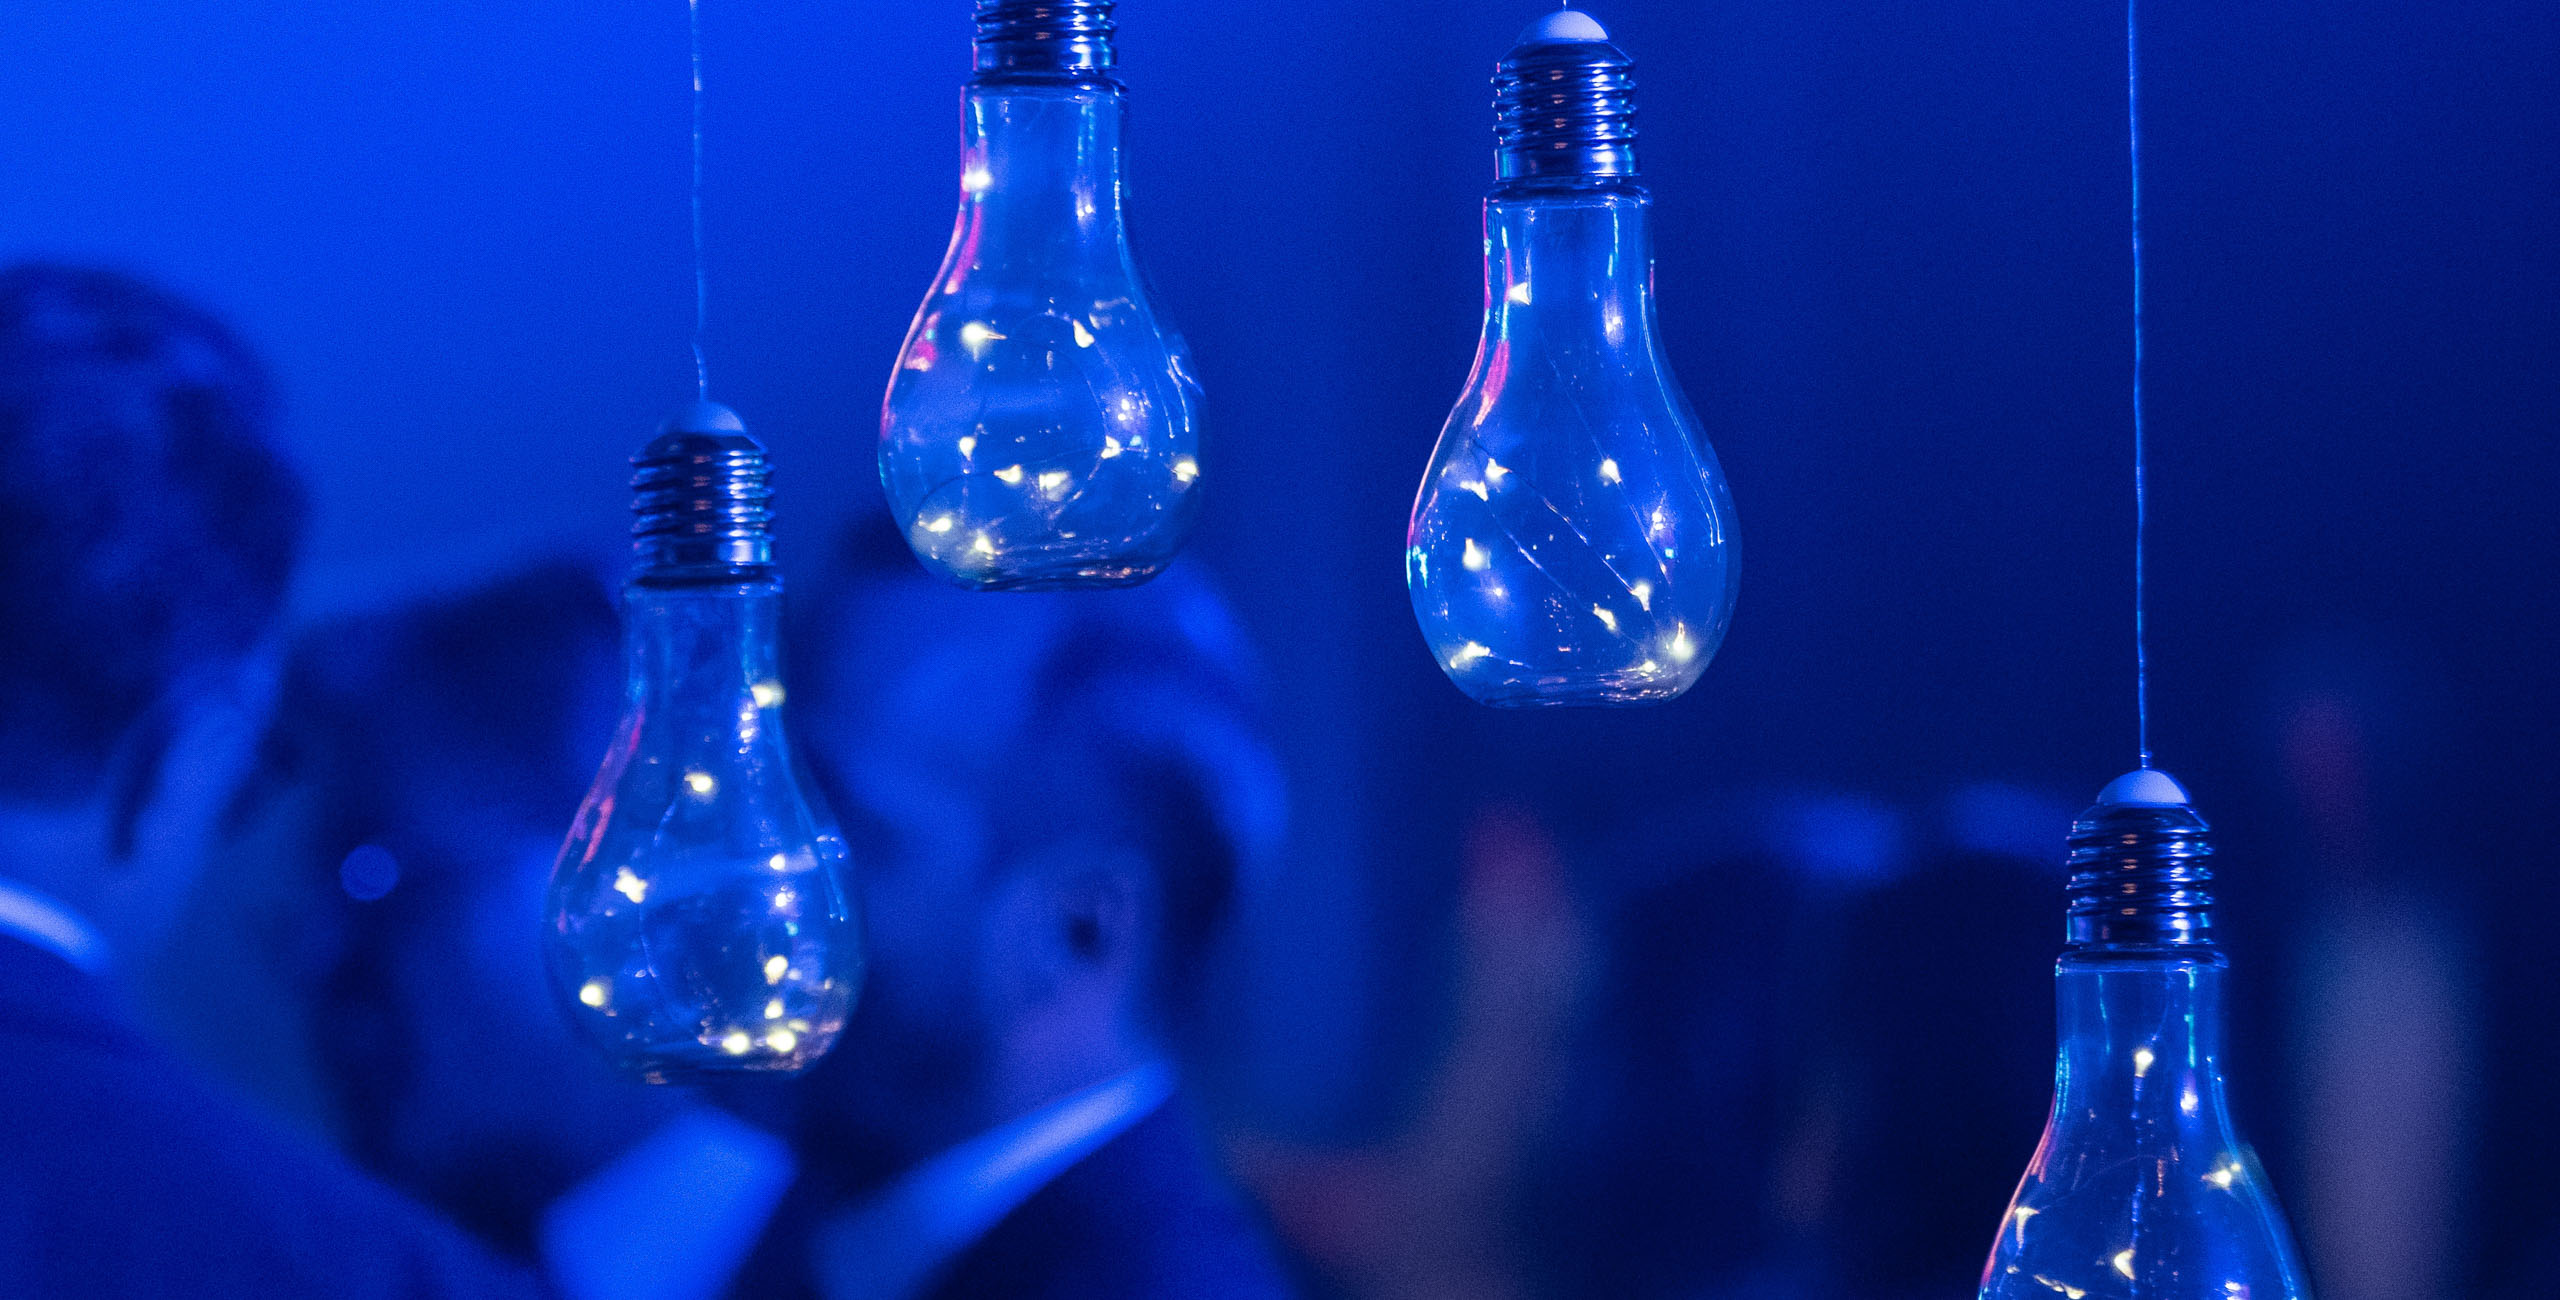 Lightbulbs hanging with blue background